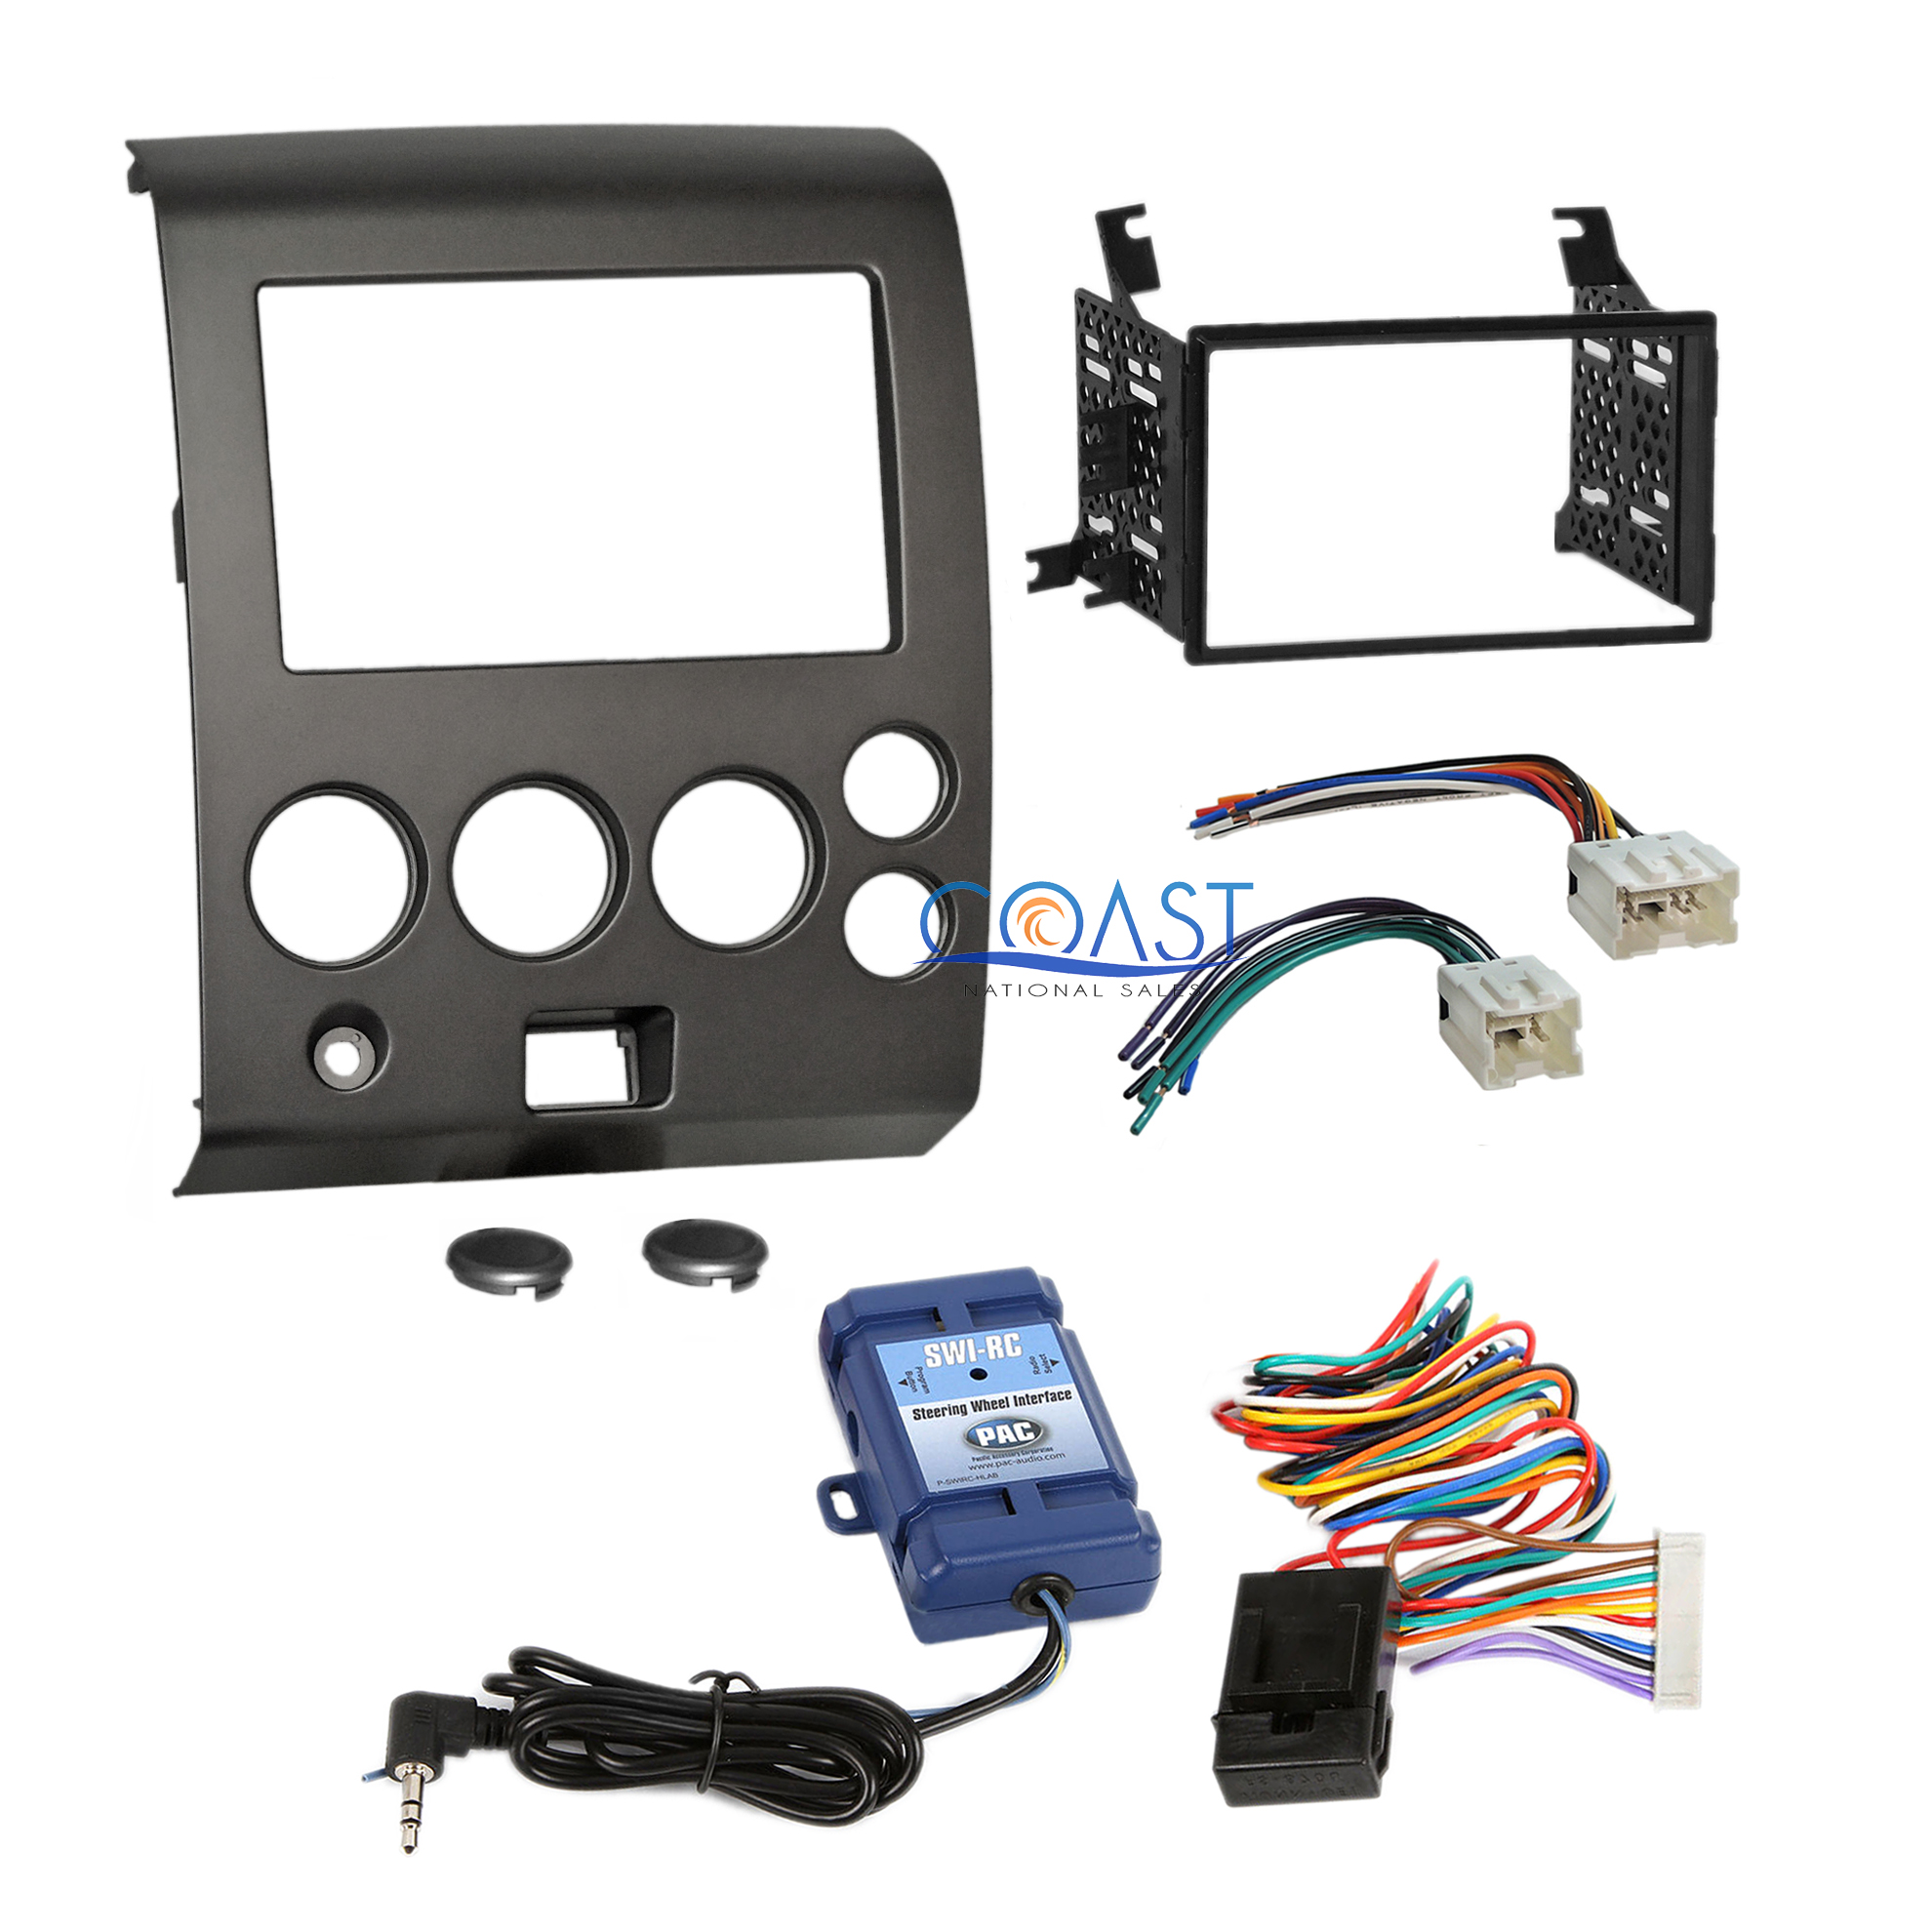 car radio stereo dash kit & steering wheel harness for 04+ nissan armada  titan | ebay  ebay